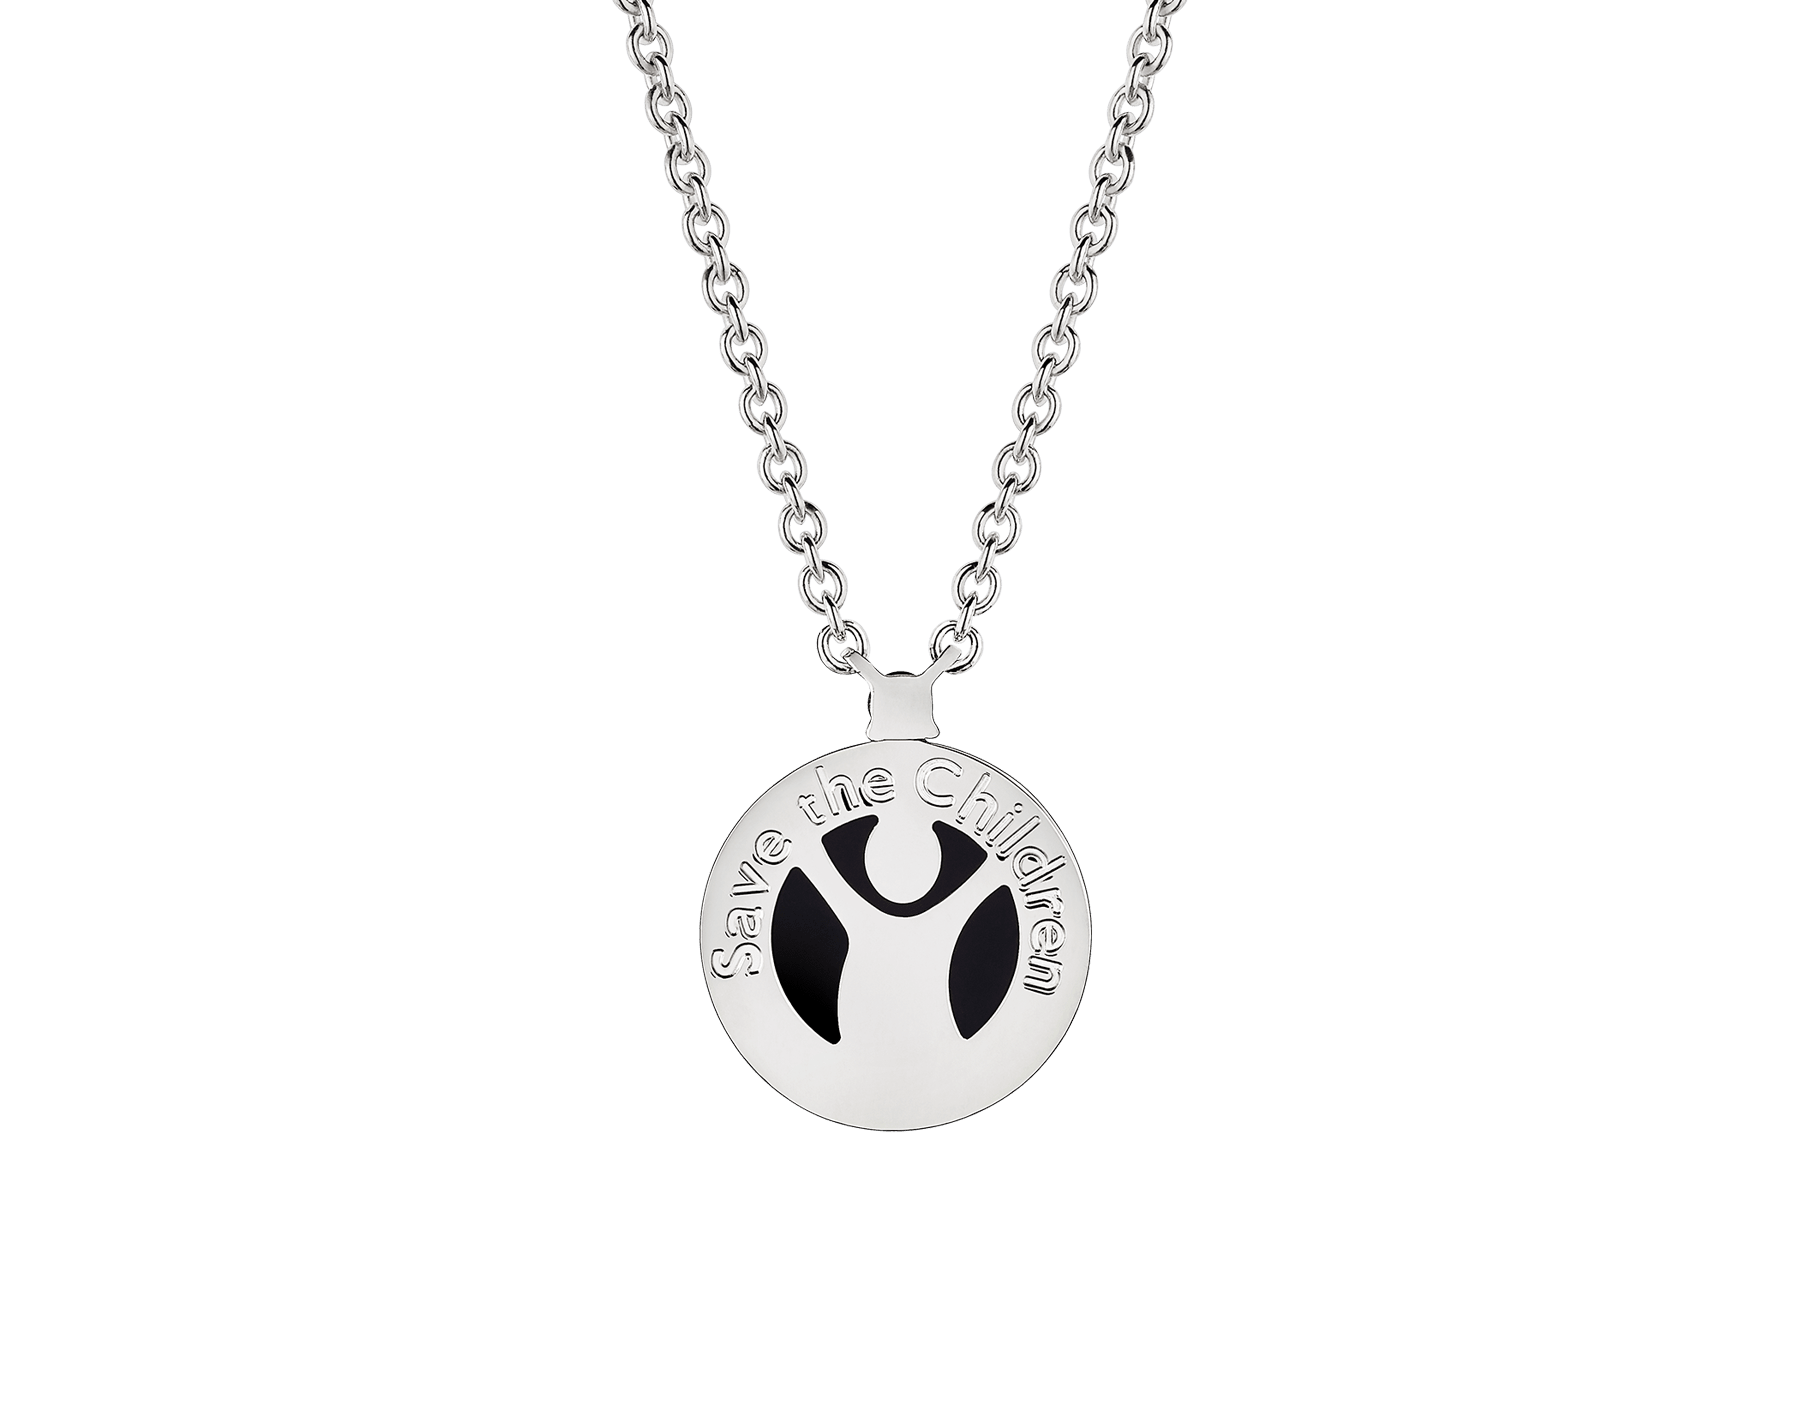 Save the Children 10th Anniversary necklace in sterling silver with pendant set with onyx element and a ruby 356910 image 2